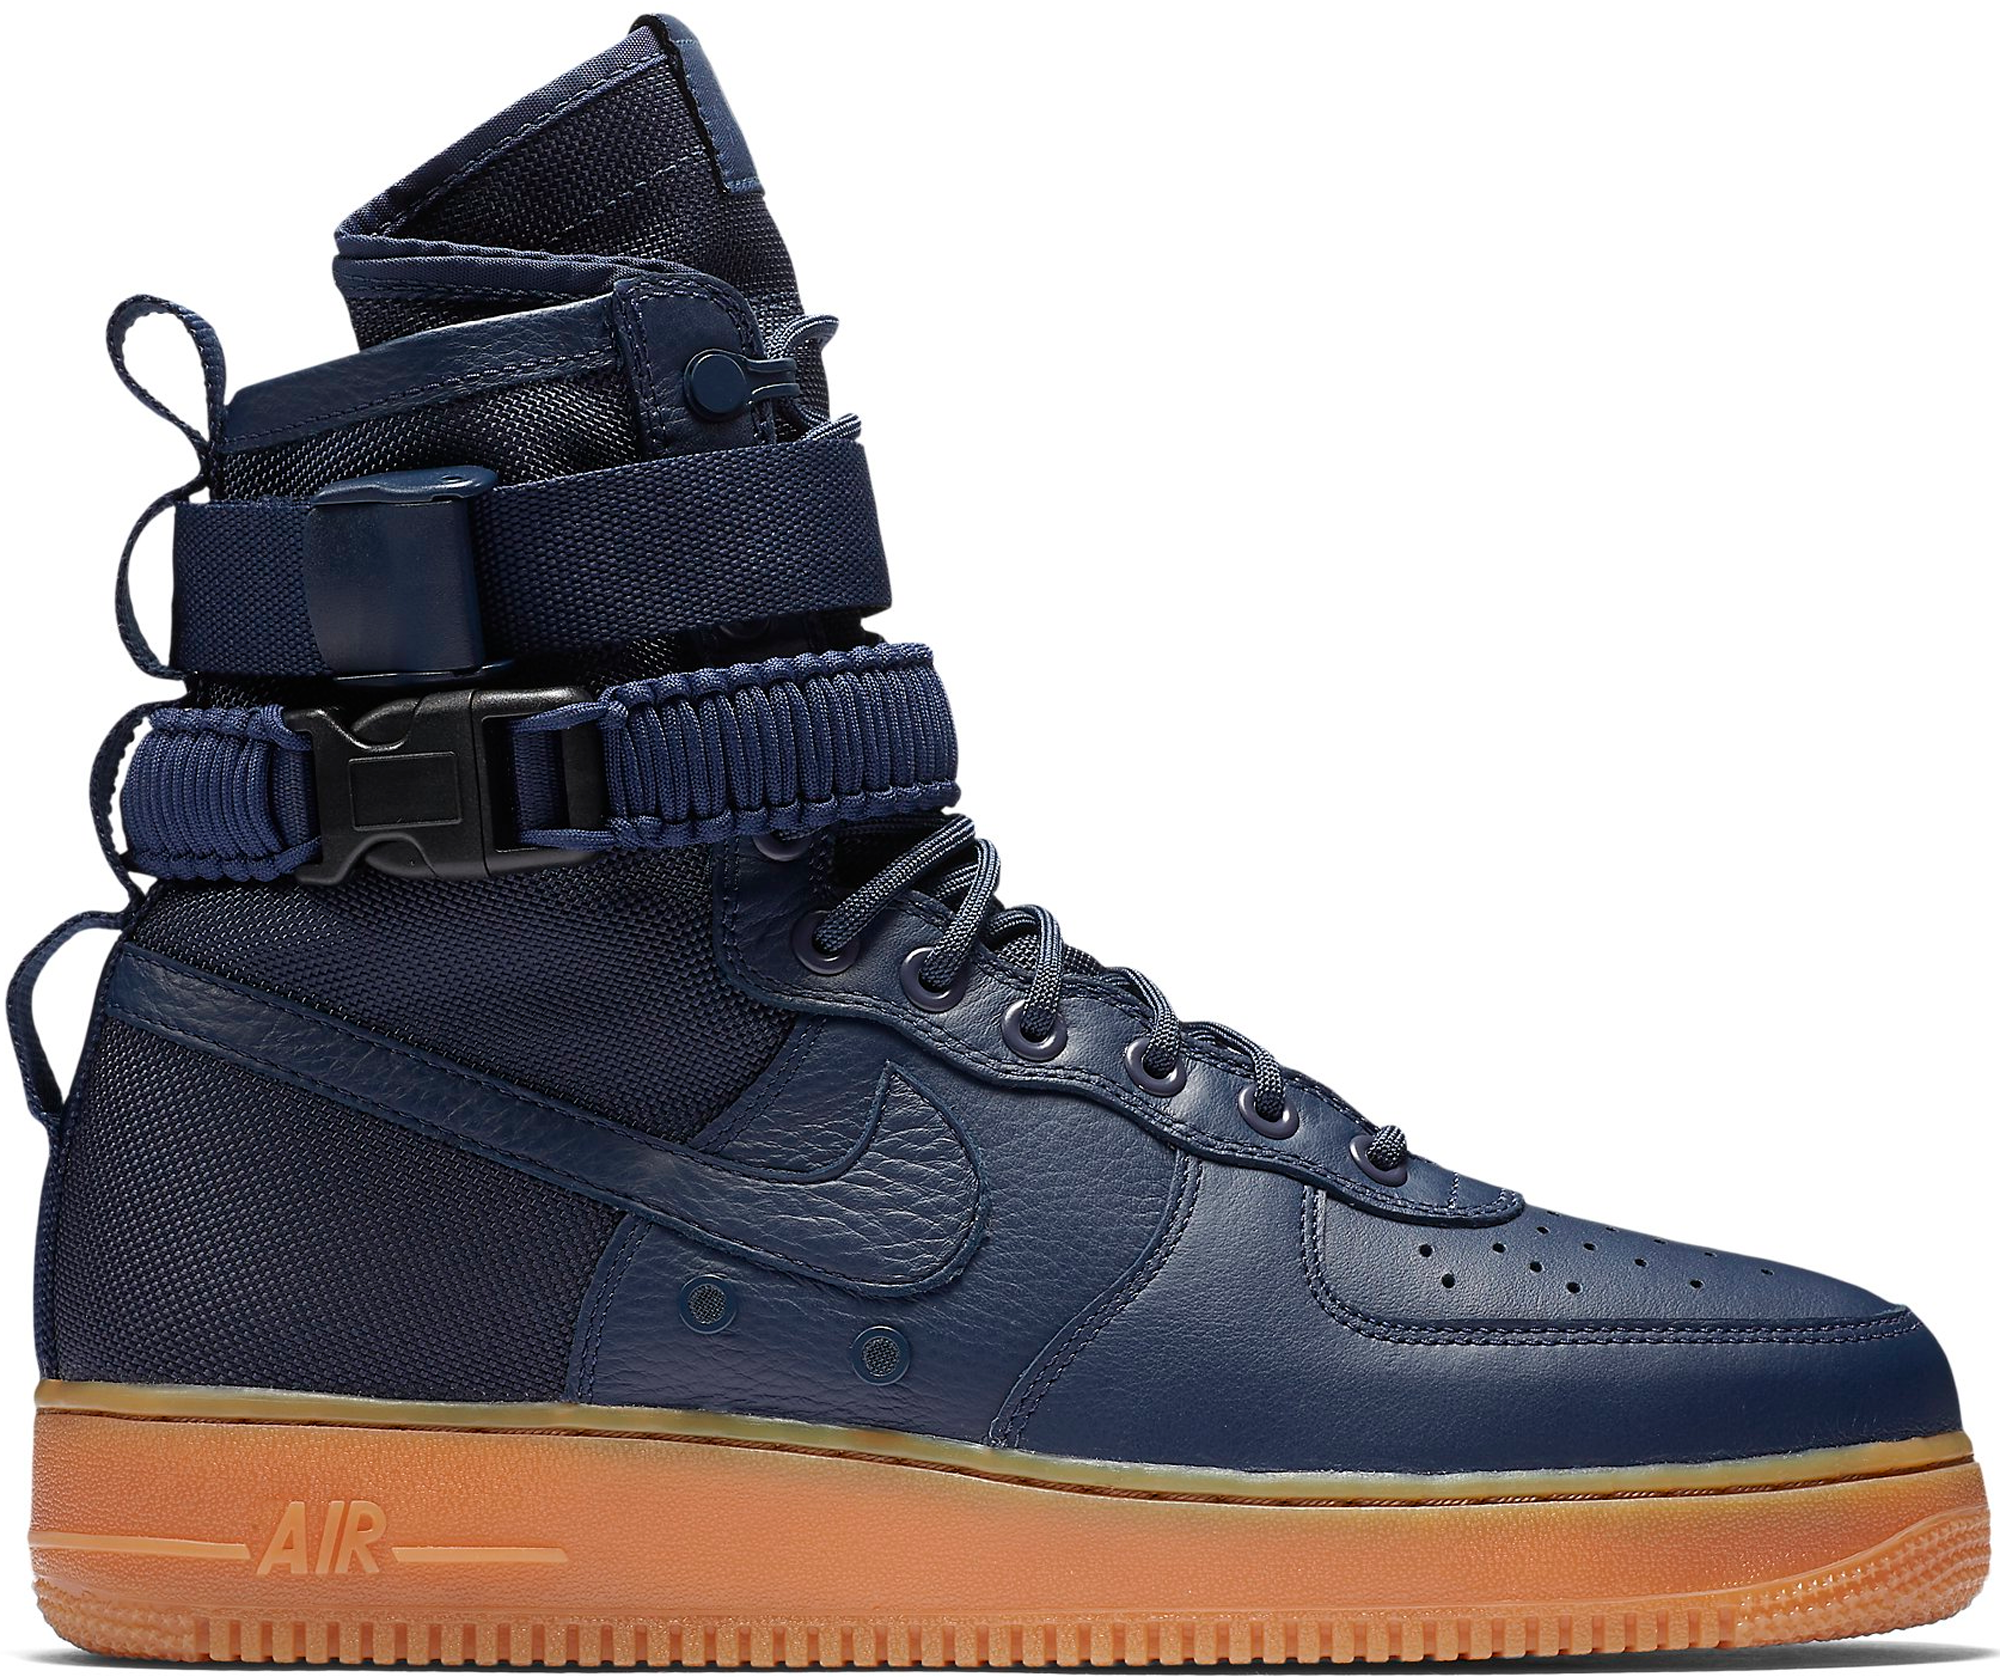 Nike SF Air Force 1 High Navy Gum